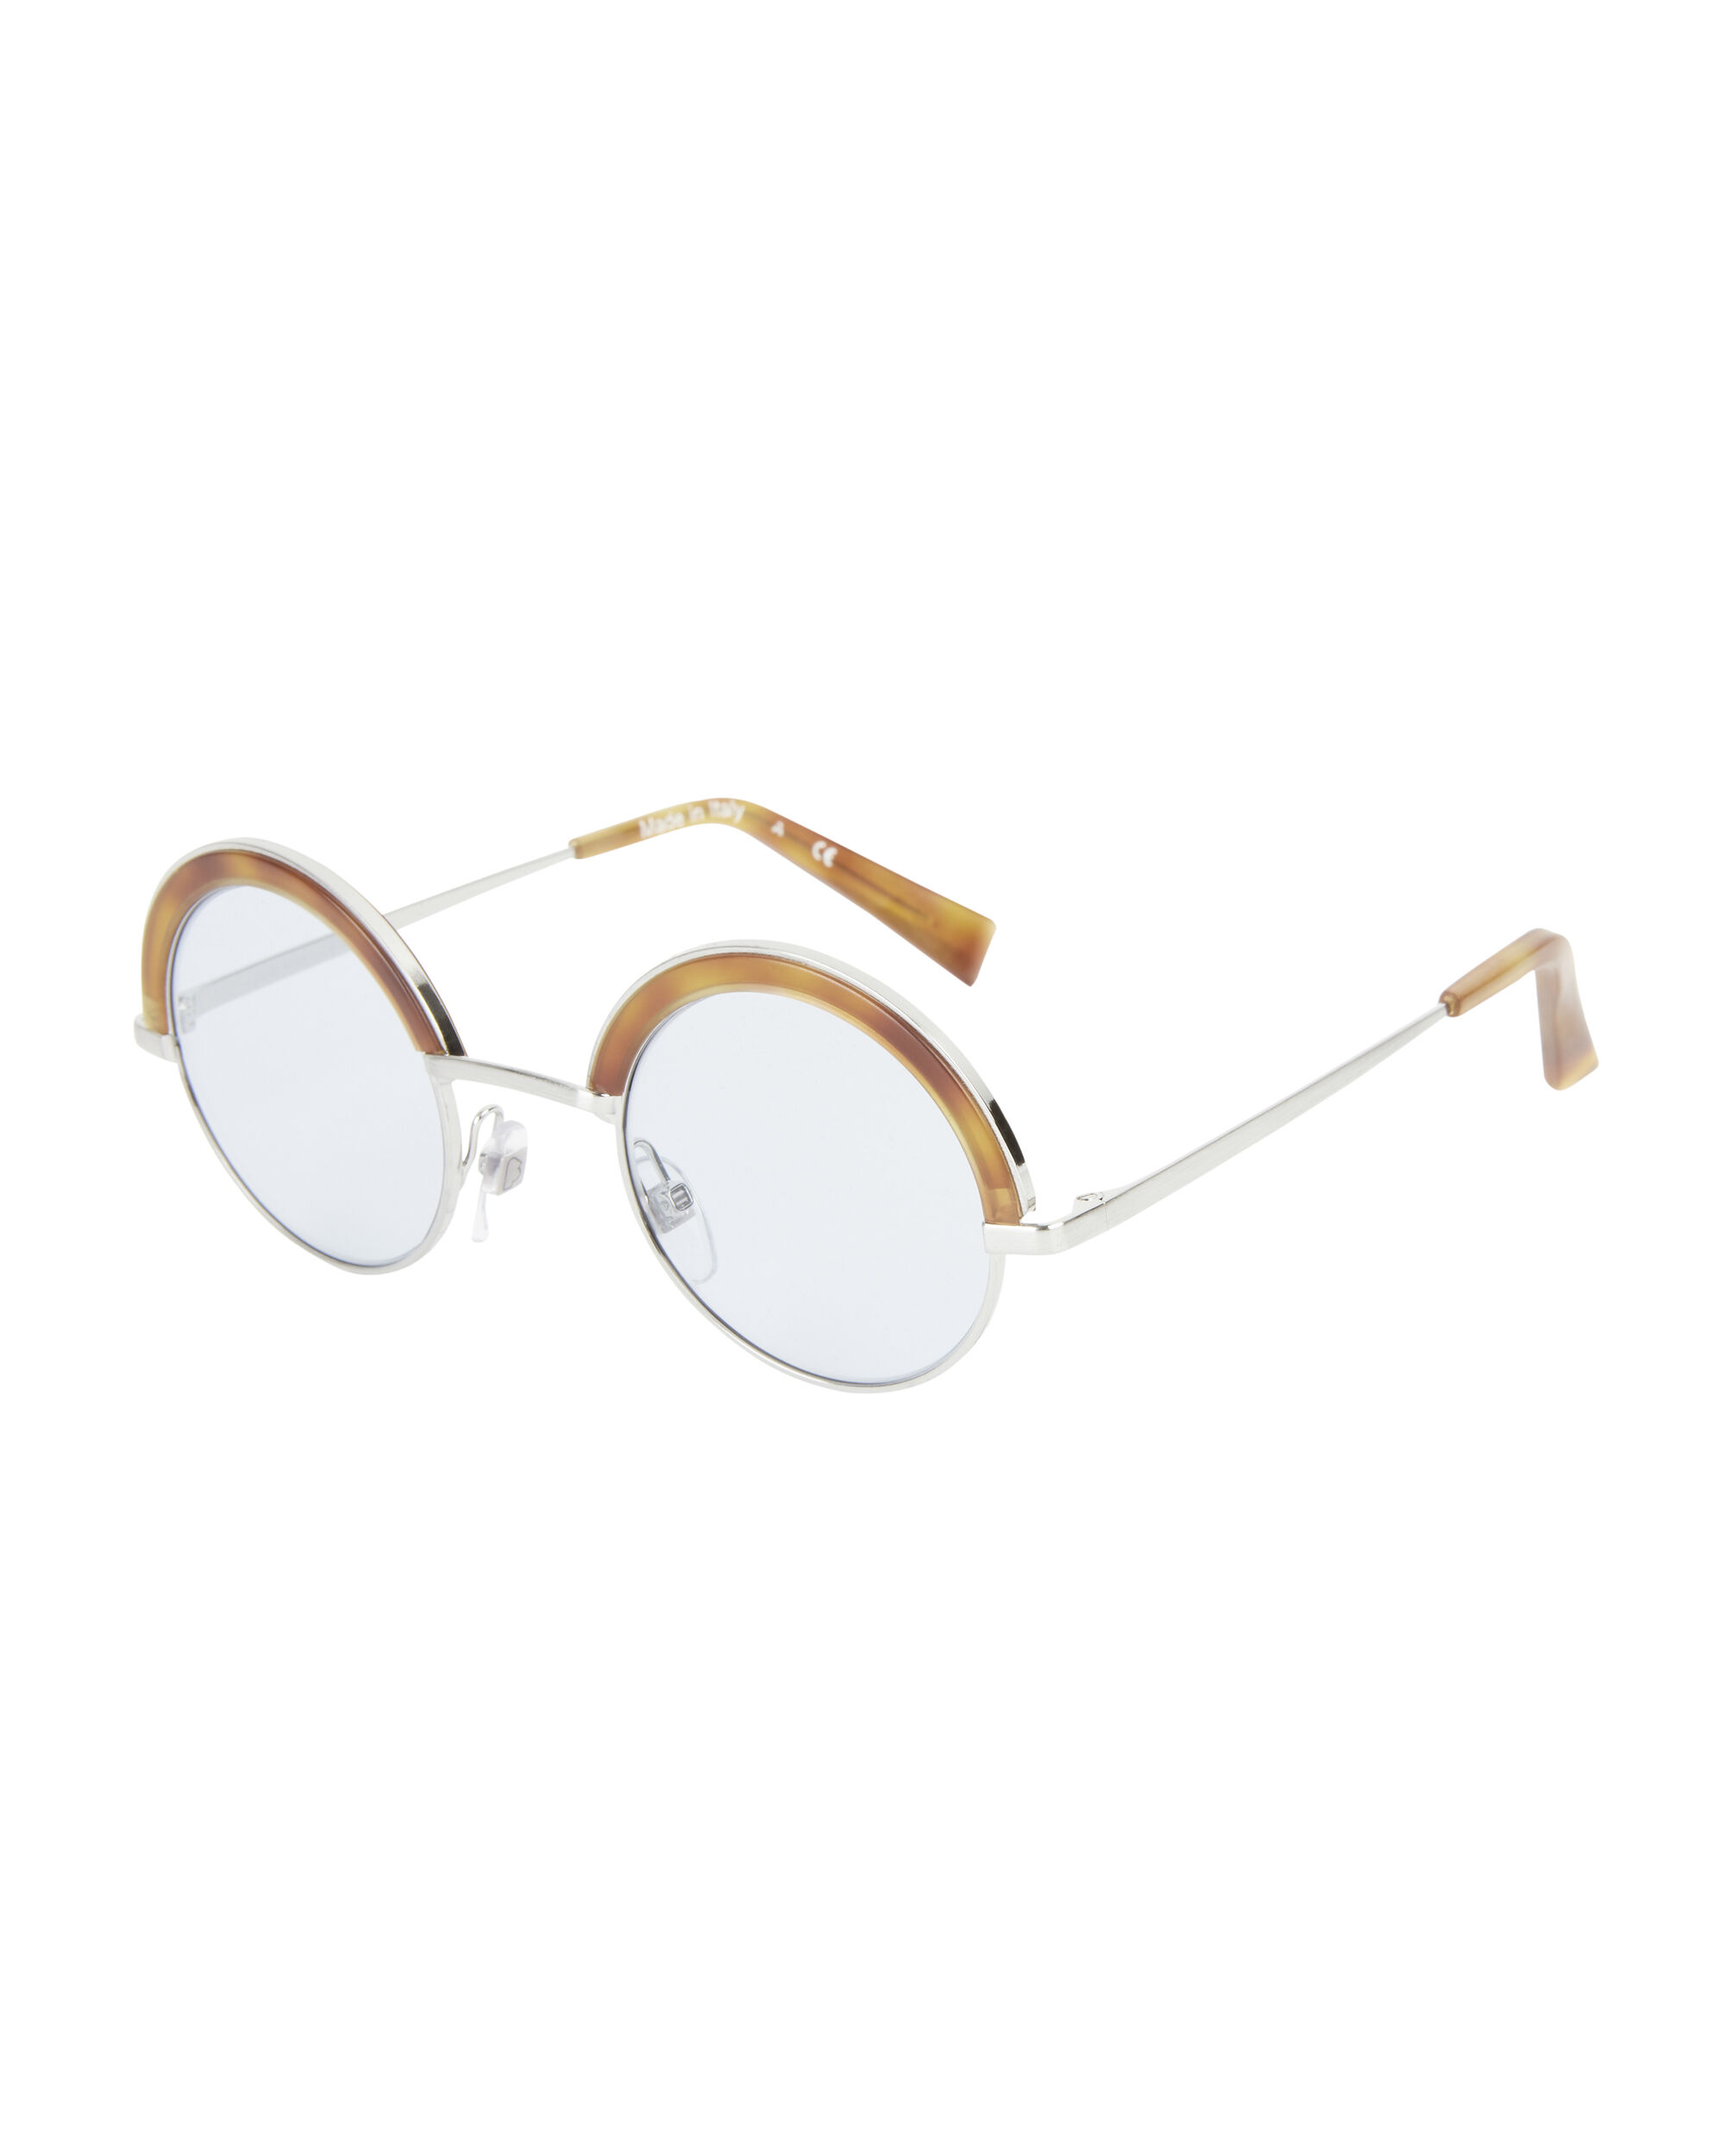 Oliver Peoples for Alain Mikli Blue Wash Round Sunglasses, SILVER, hi-res